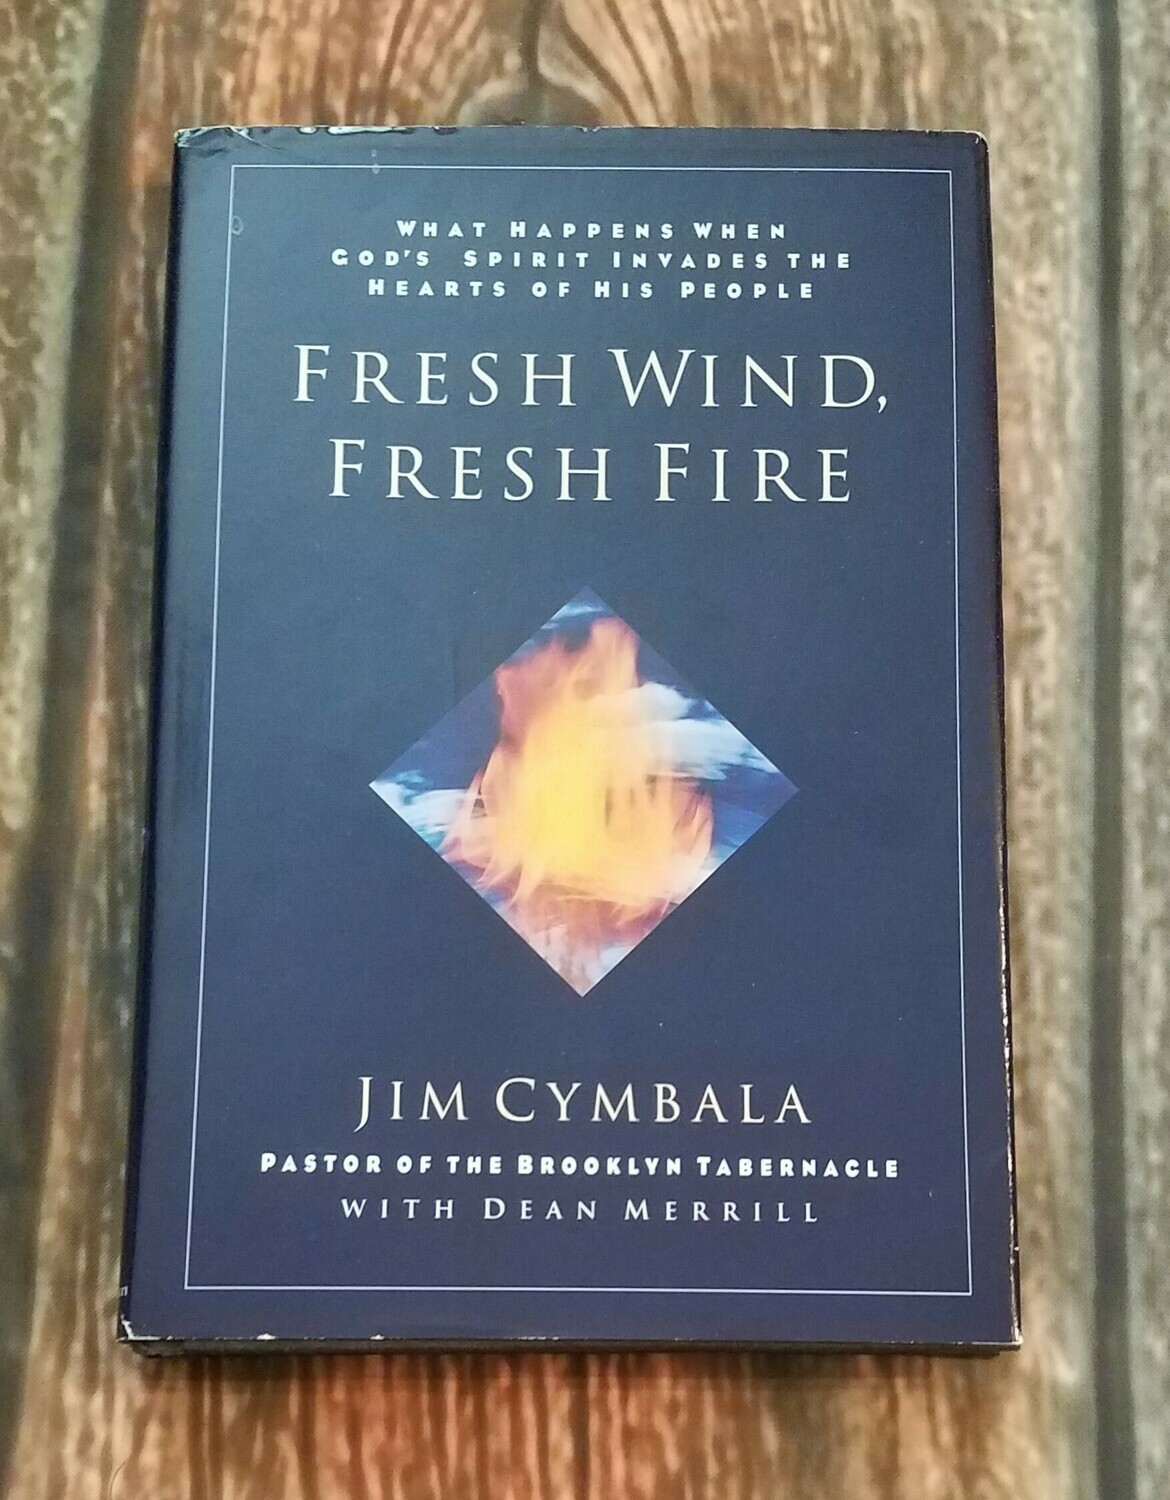 Fresh Wind, Fresh Fire by Jim Cymbala with Dean Merrill